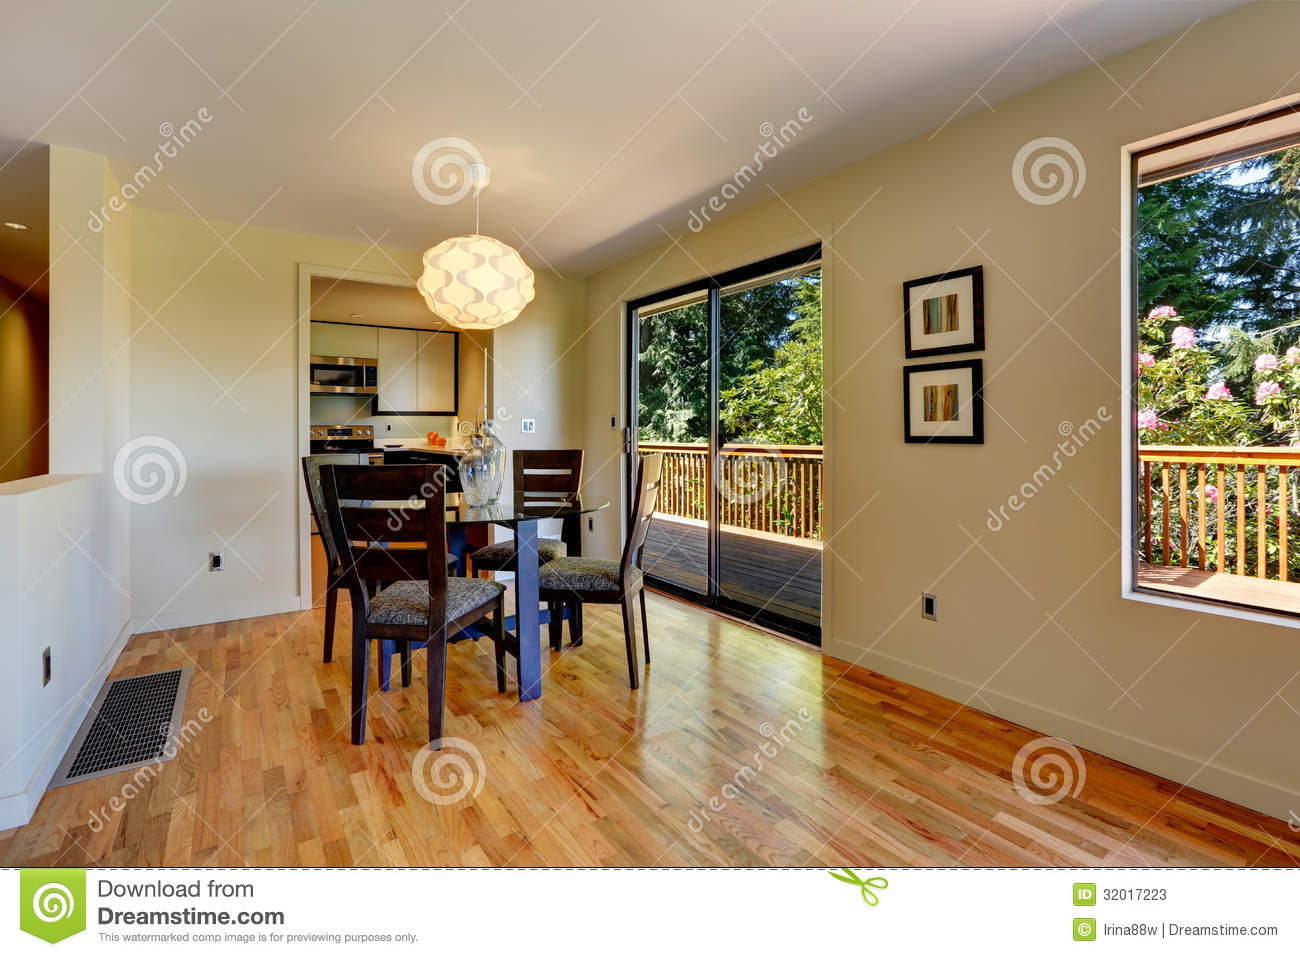 Large Open Space With Dining Room Table And Balcony Door